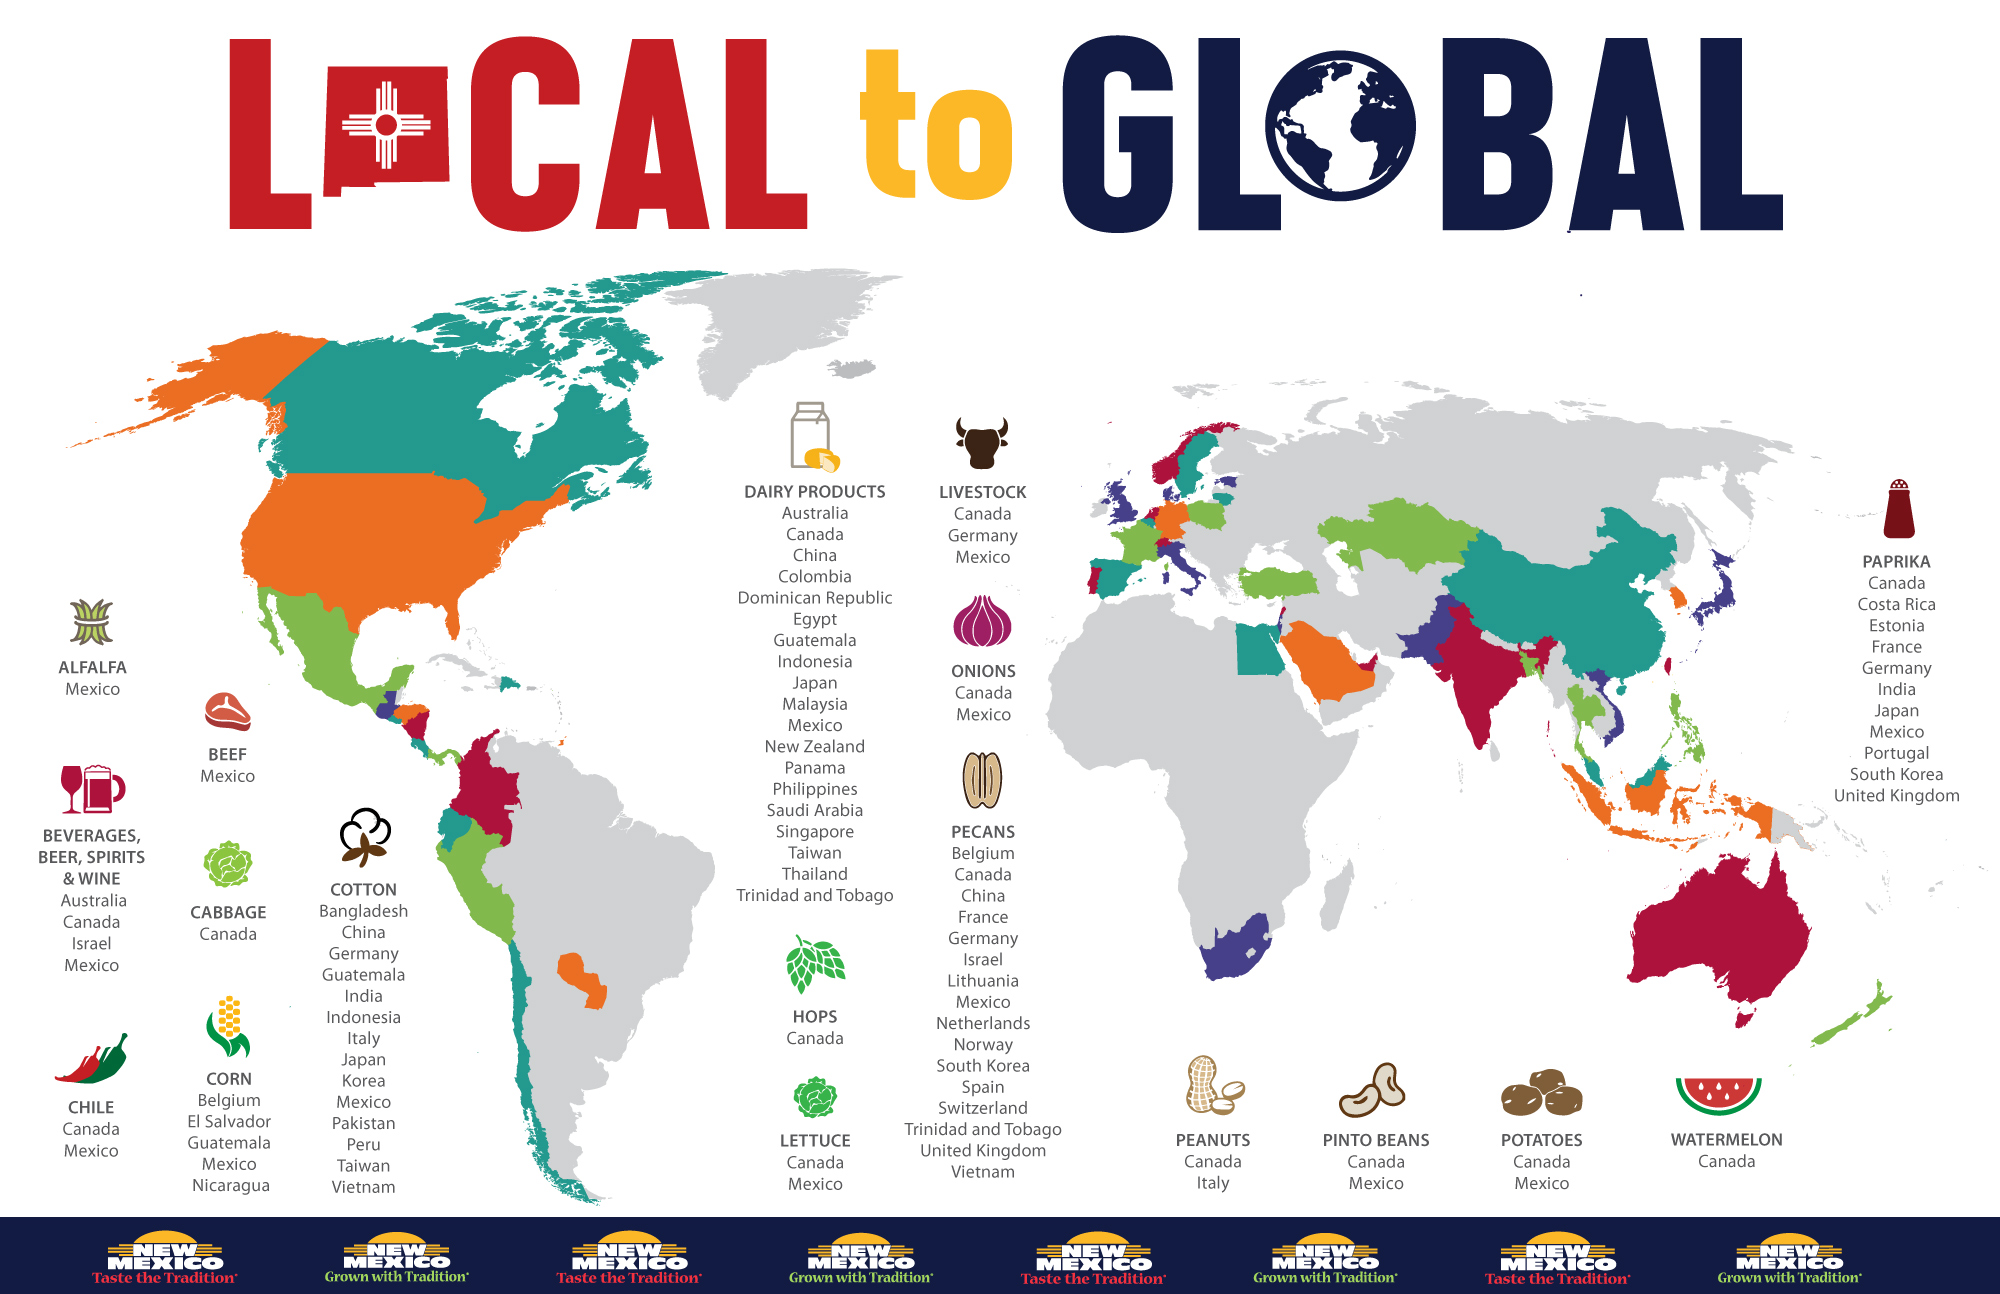 local-to-global infographic